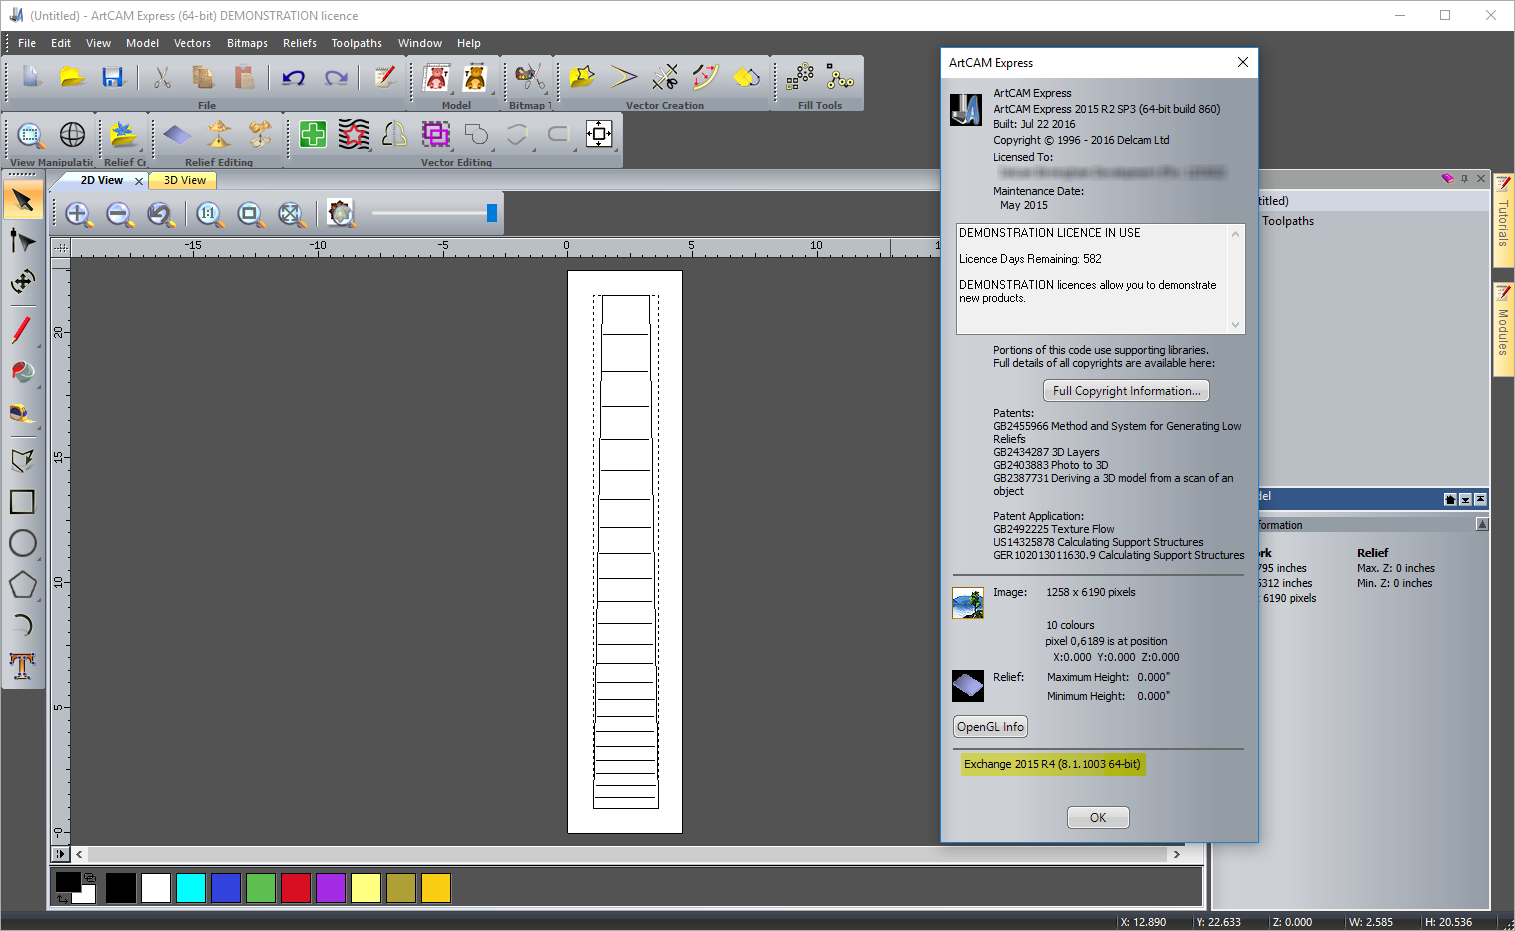 Solved: Error importing  dwg from sketchup onto ArtCAM - Autodesk